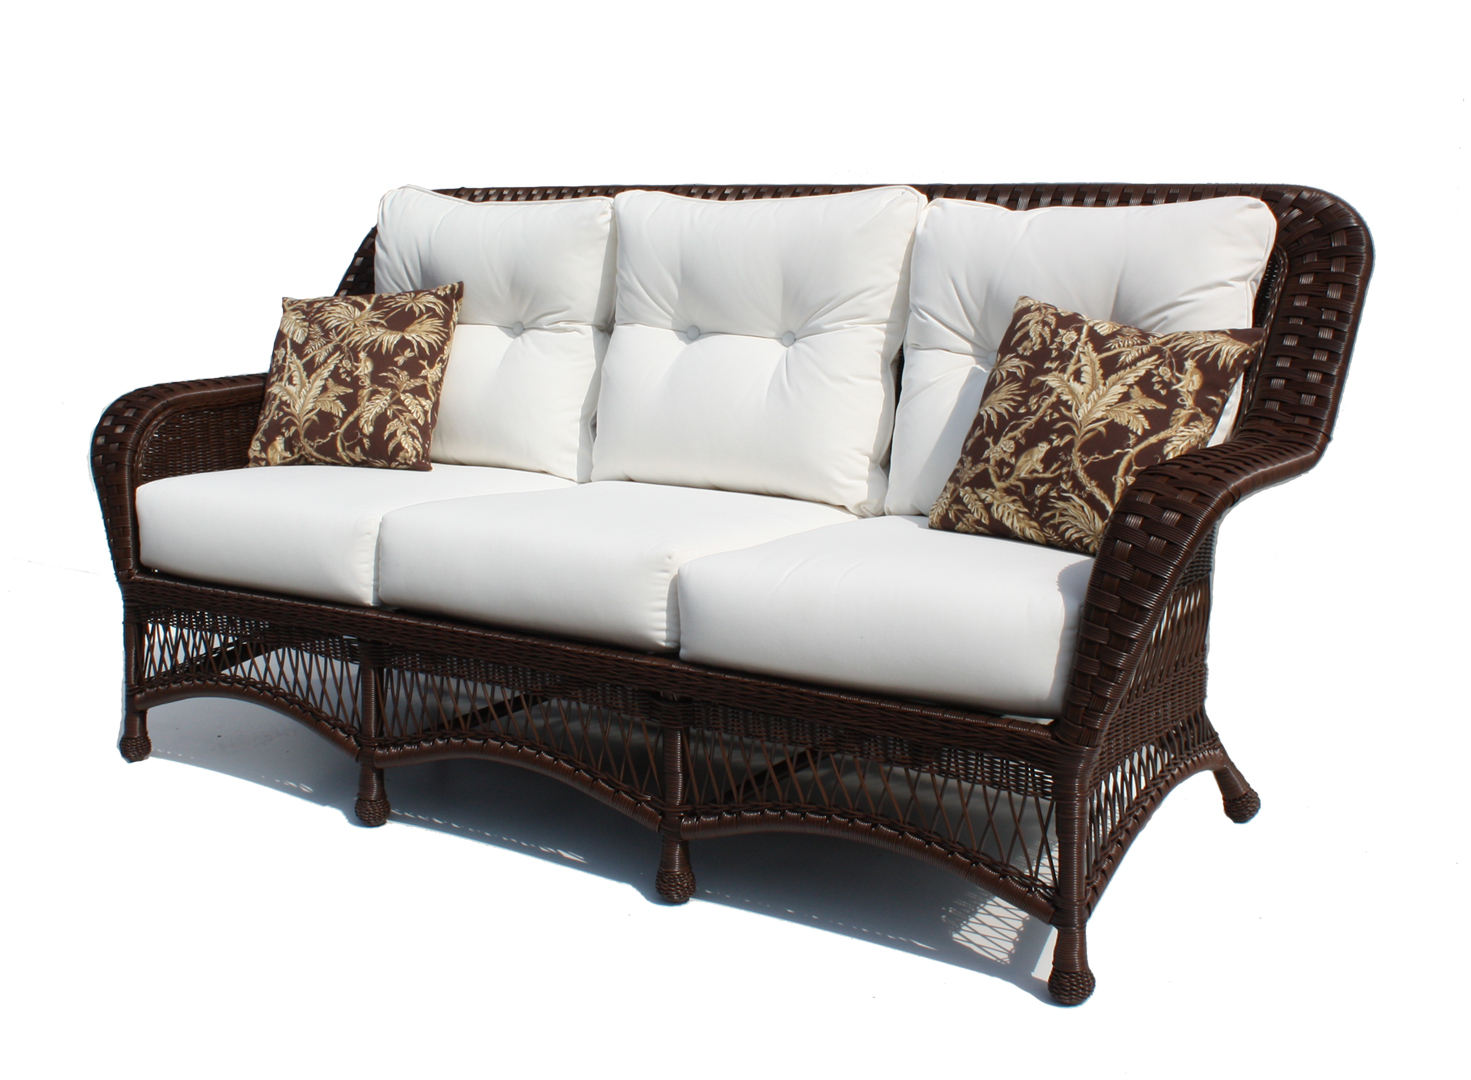 Attractive Outdoor Wicker Sofa   Princeton   Chocolate Brown